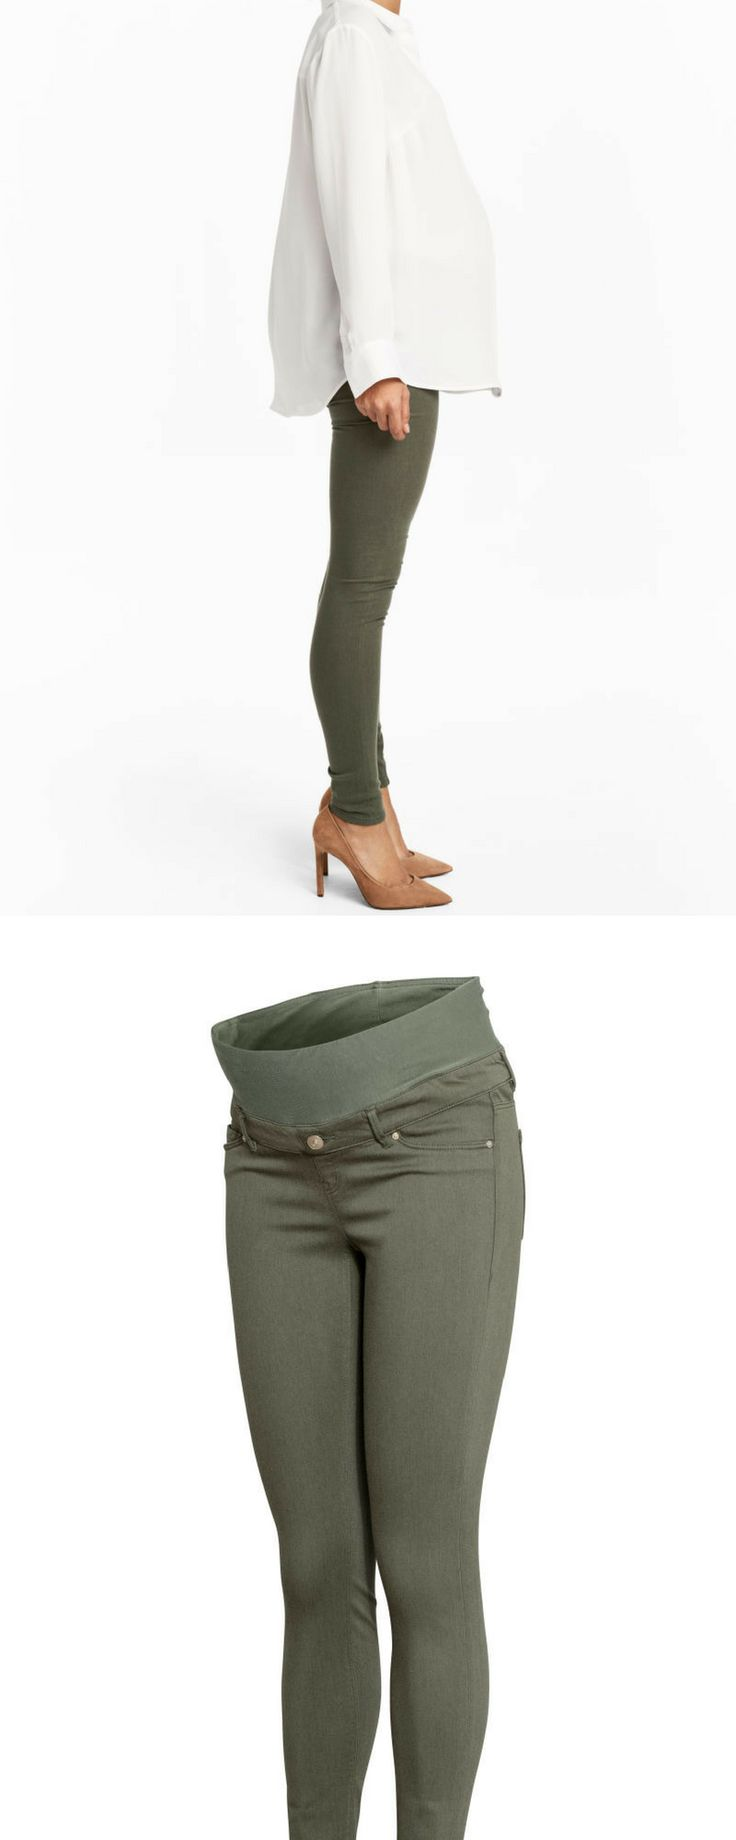 Did you know H&M has a maternity line? Get these super cute maternity skinnies for $34.99 | H&M MAMA Slim-fit Pants | maternity clothes | maternity outfit | maternity fashion | maternity style | maternity wardrobe | pregnancy | maternity pants | bump | #ad